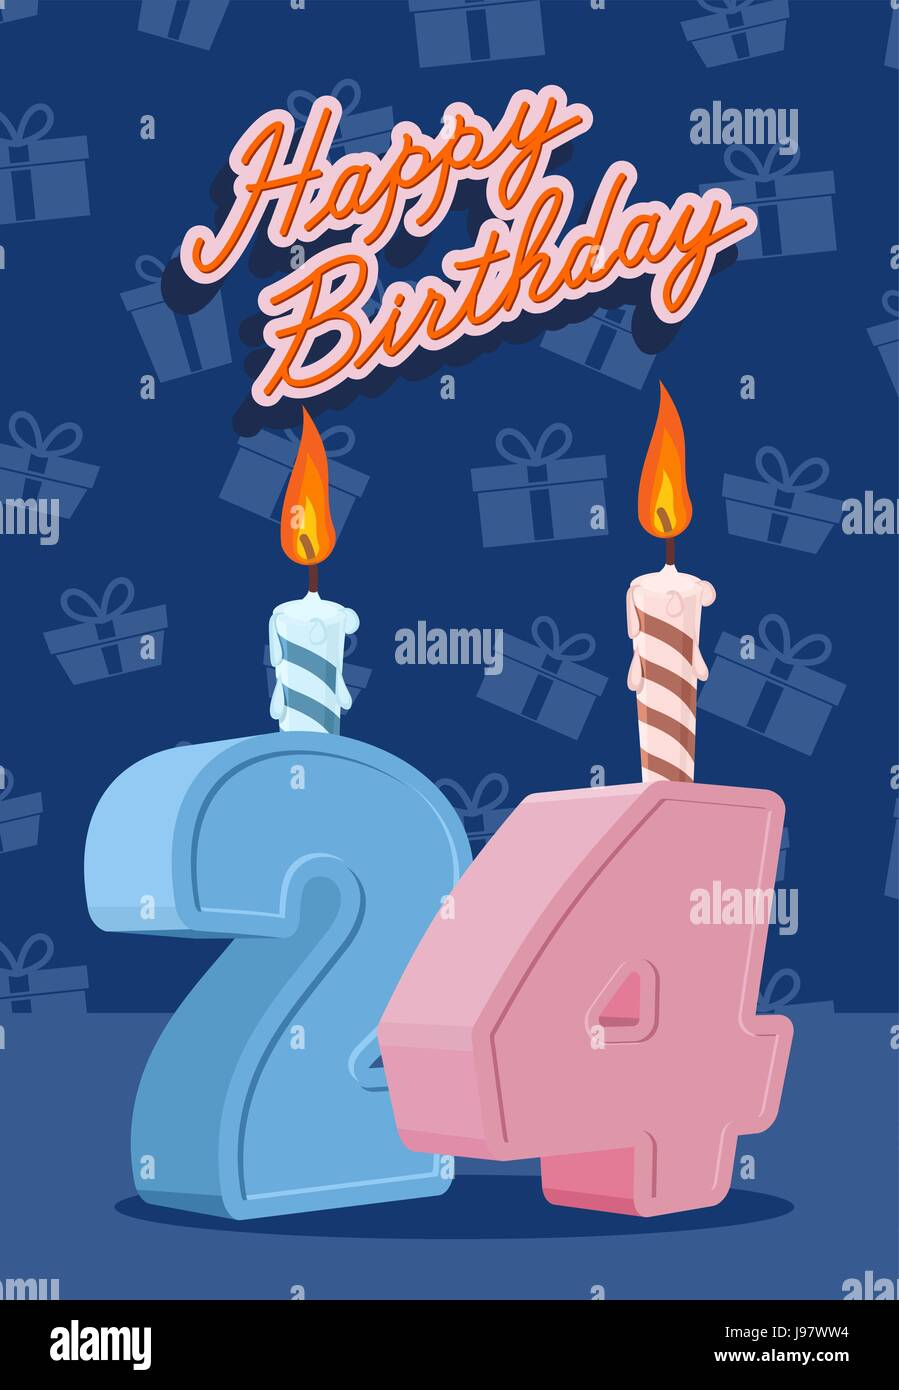 Happy Birthday Card With 24th Birthday Vector Illustration Stock Vector Image Art Alamy